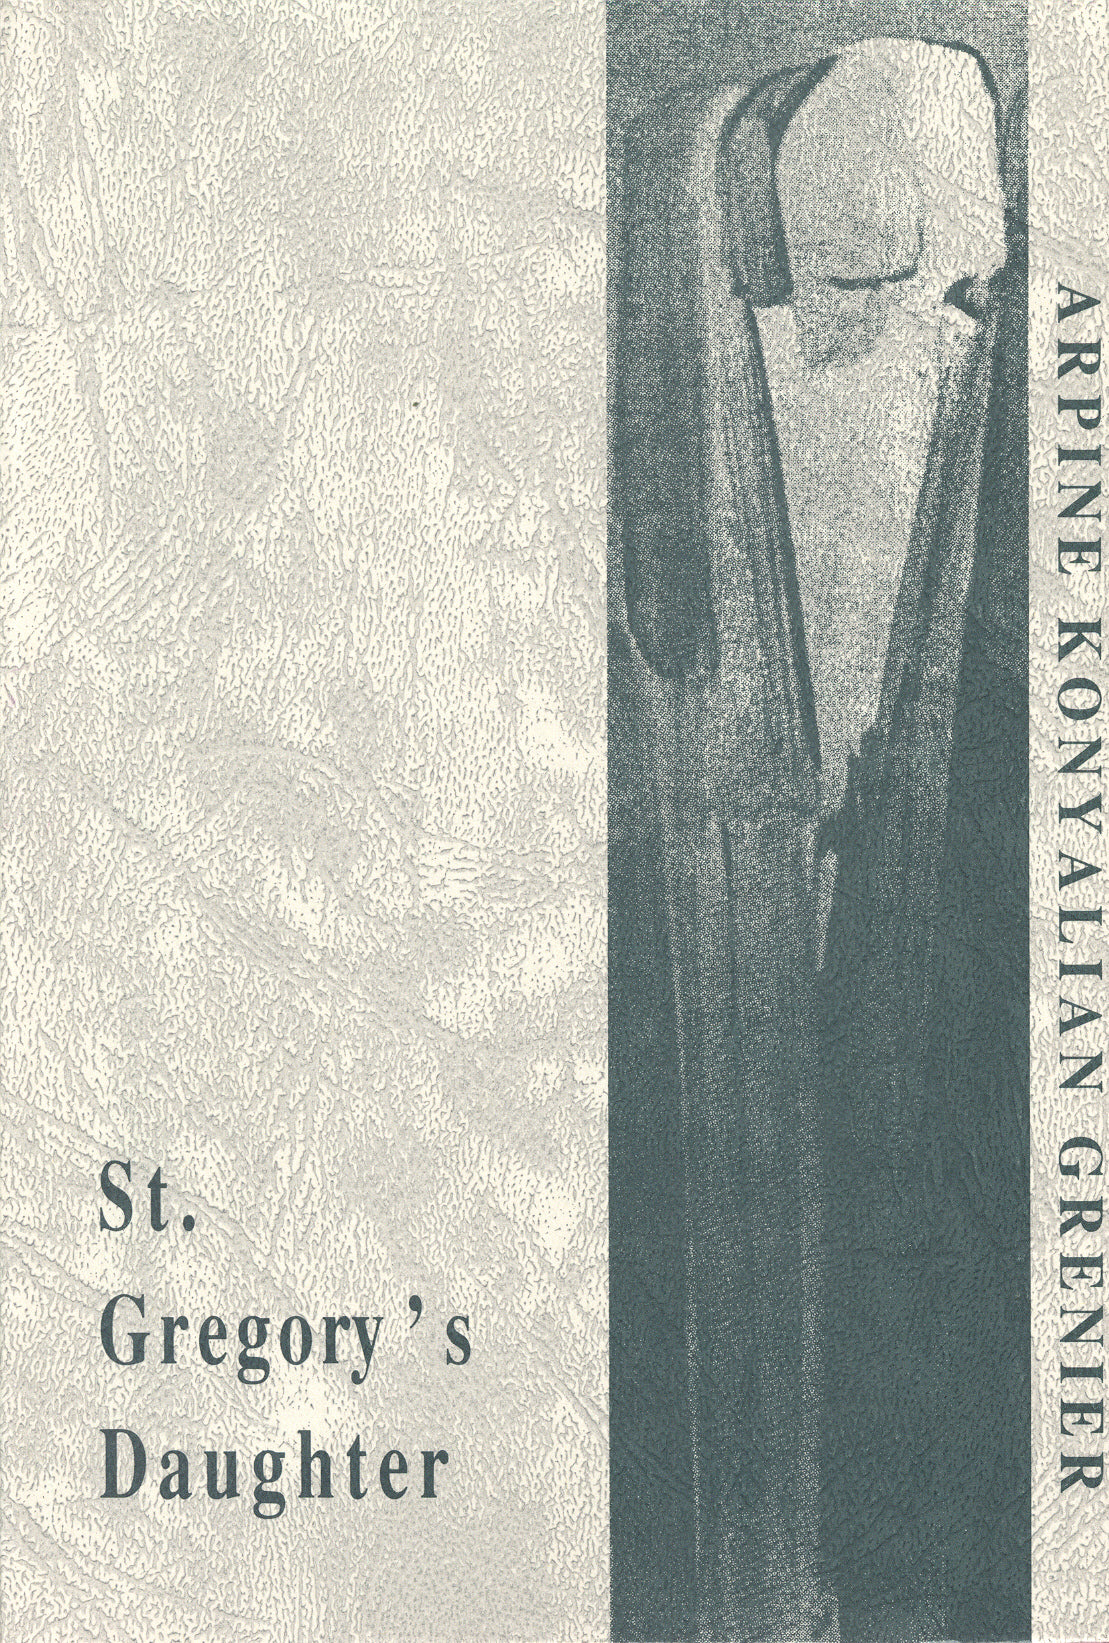 ST. GREGORY'S DAUGHTER